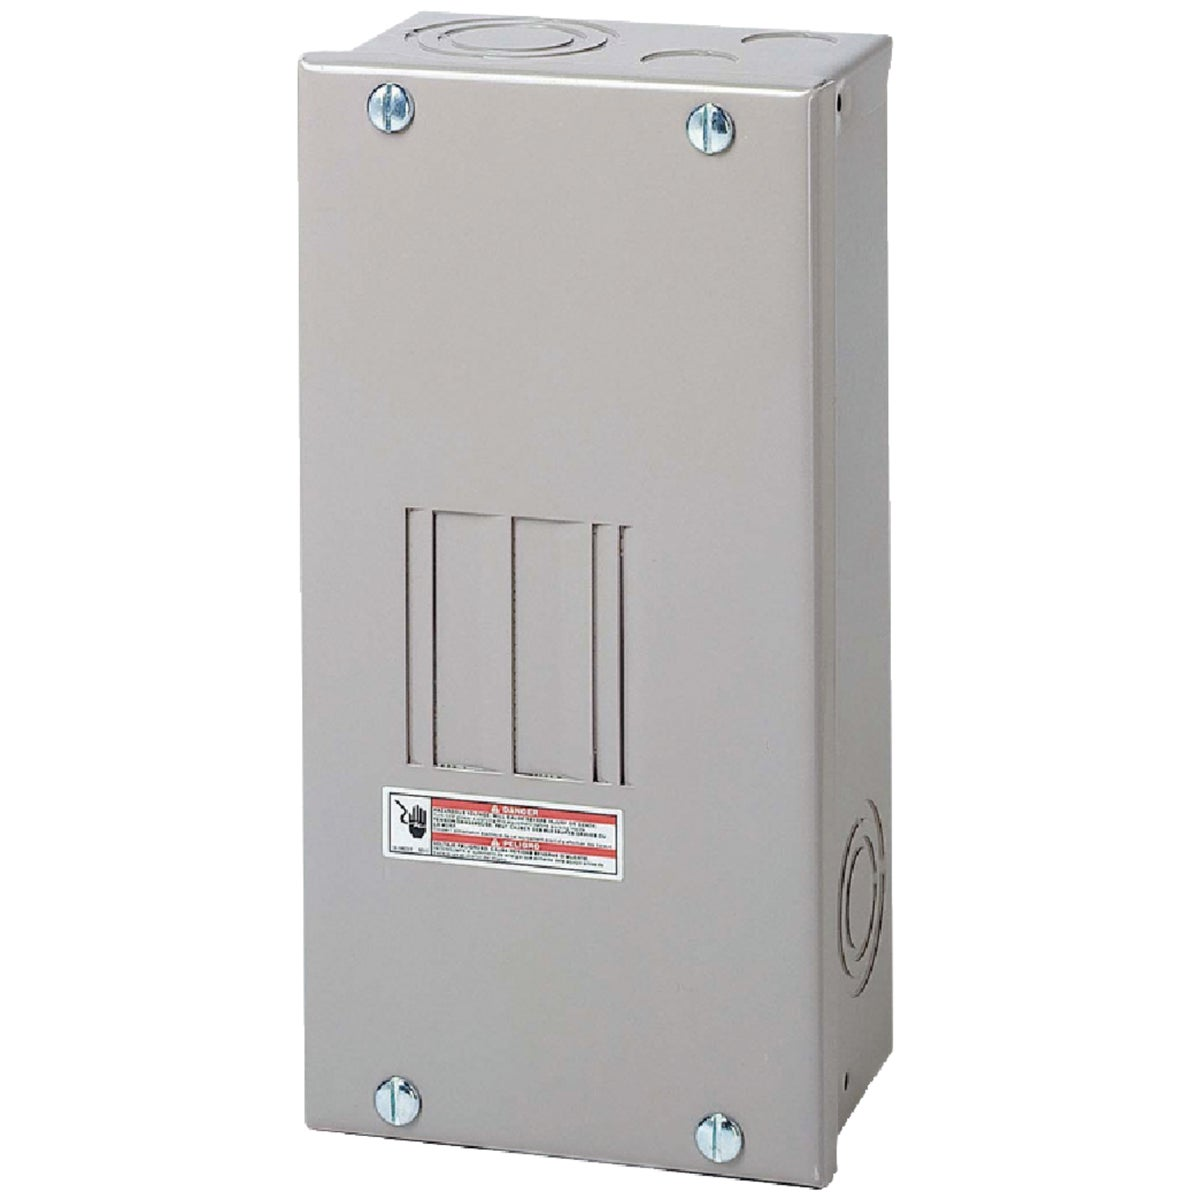 40A MAINLUG LOAD CENTER - CH2L40SP by Eaton Corporation